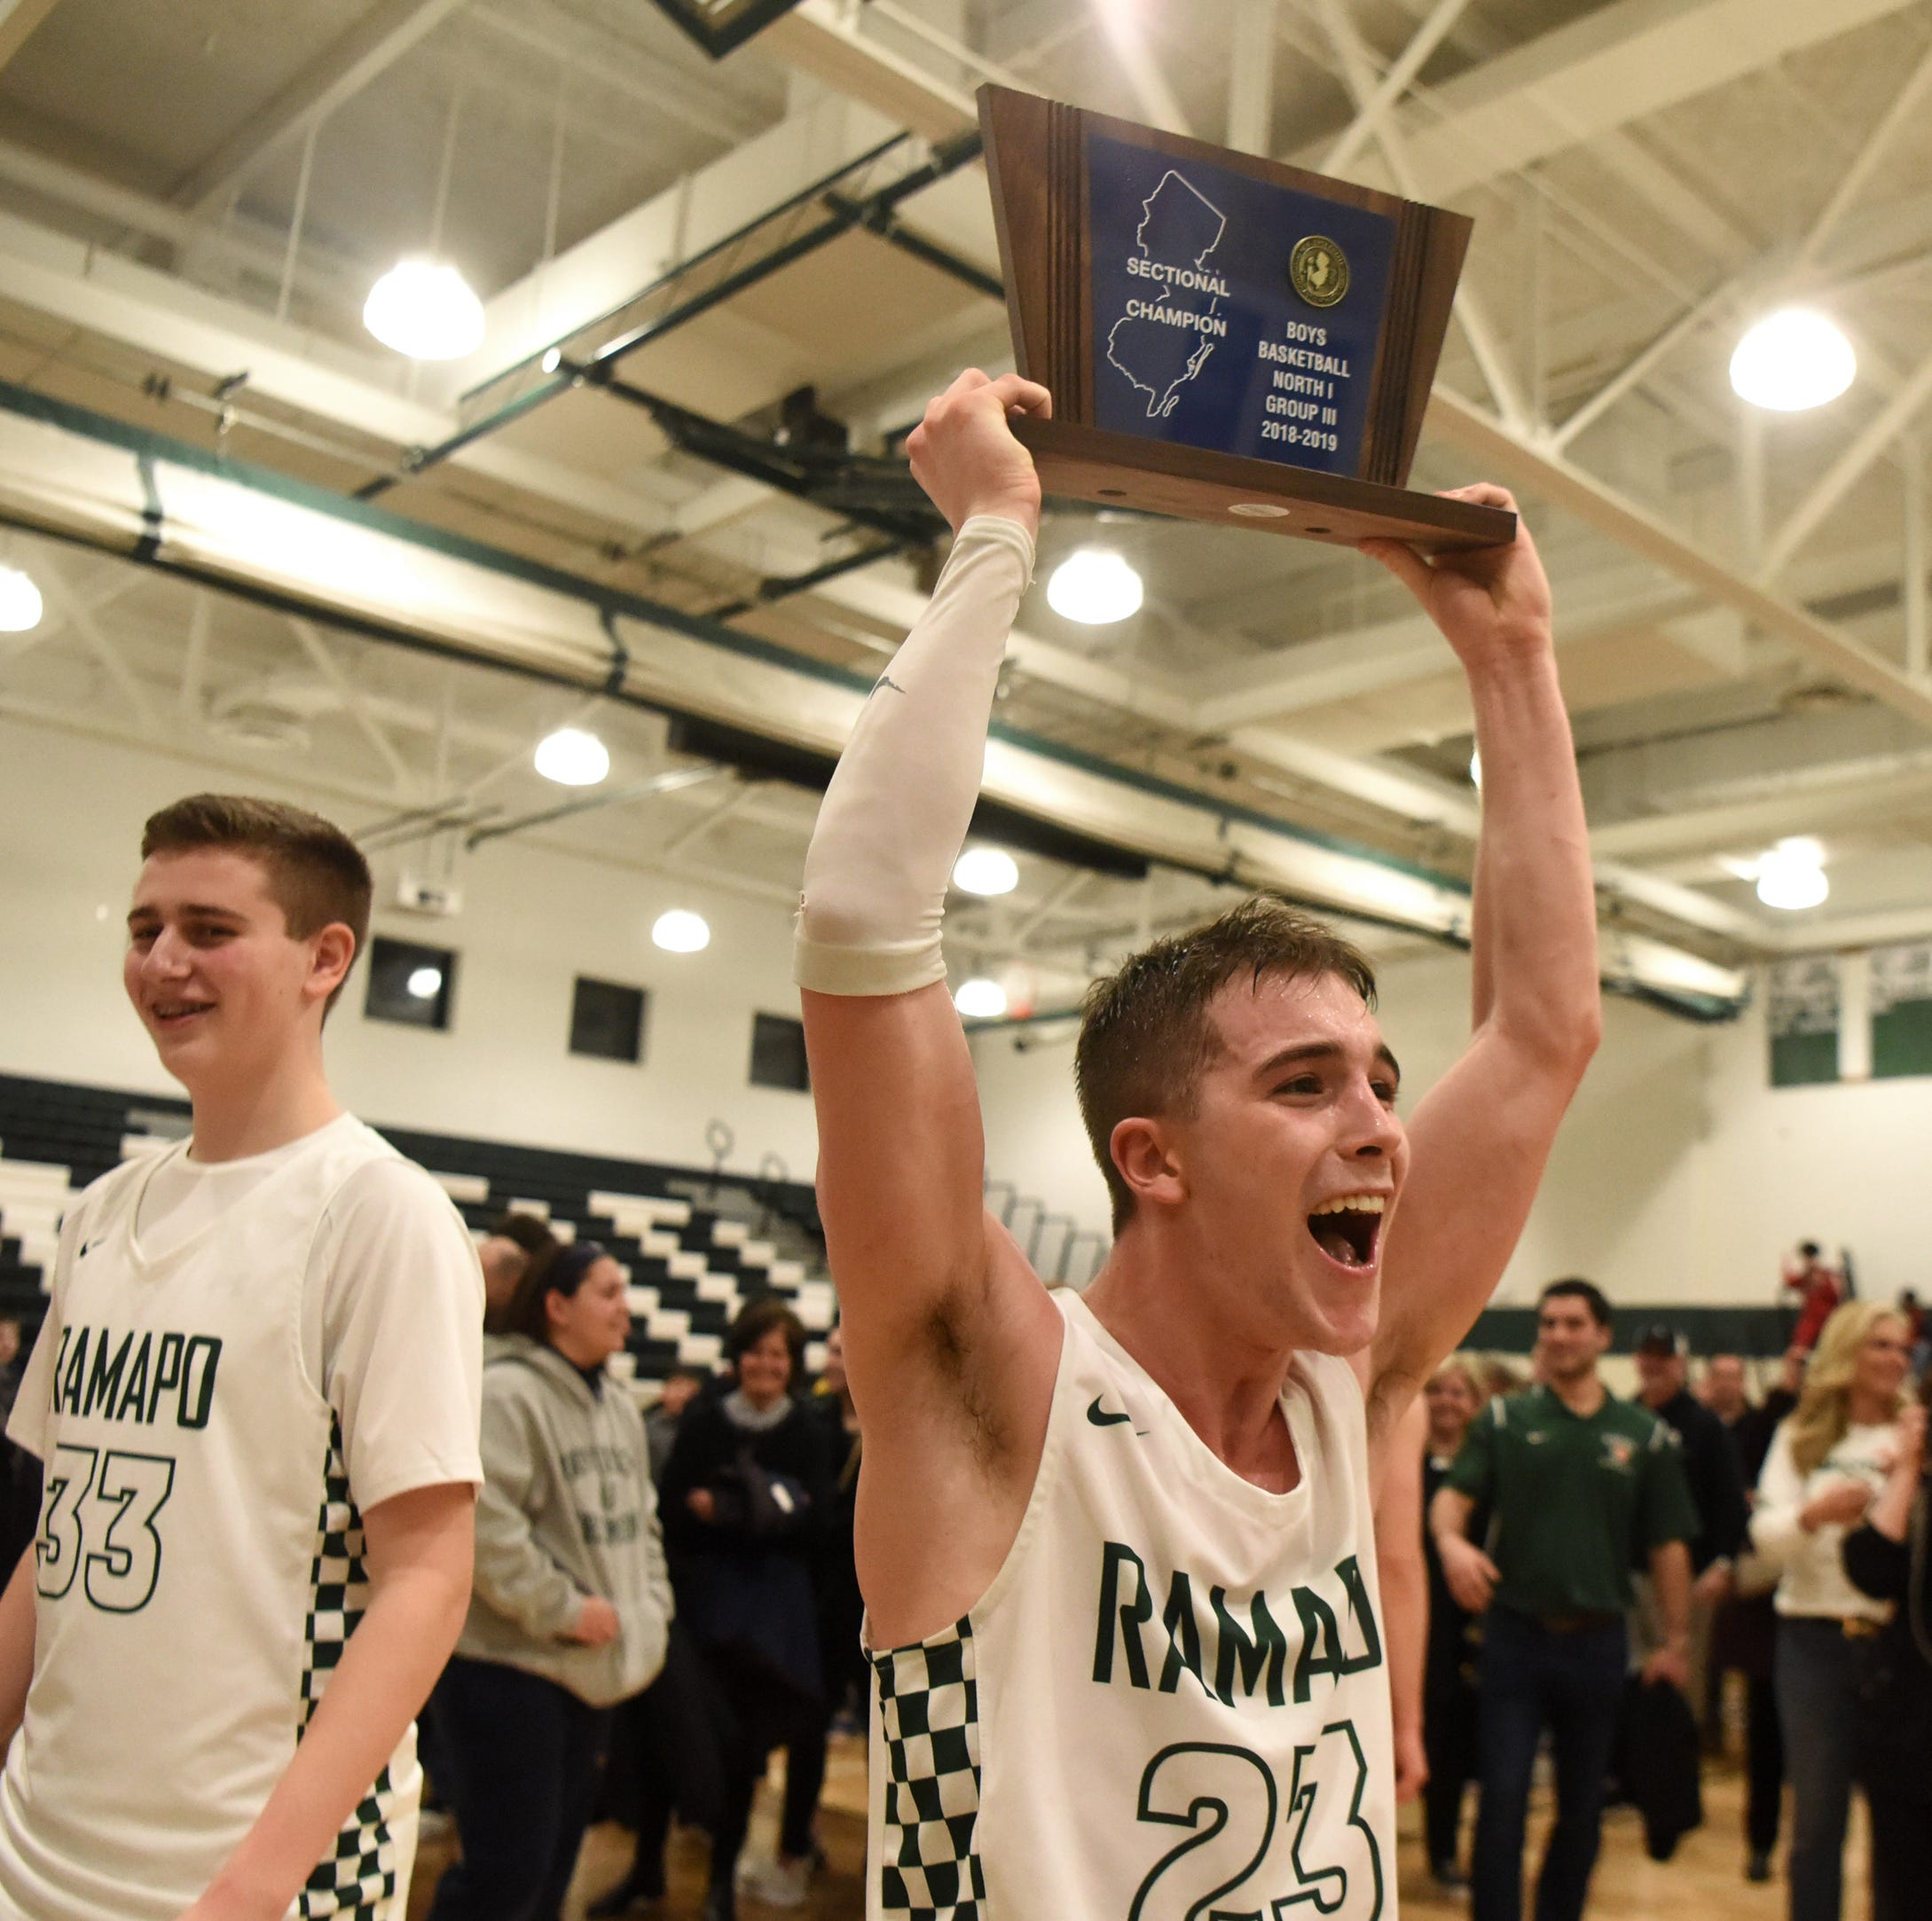 Ramapo boys basketball beats Teaneck, wins first sectional title in 14 years